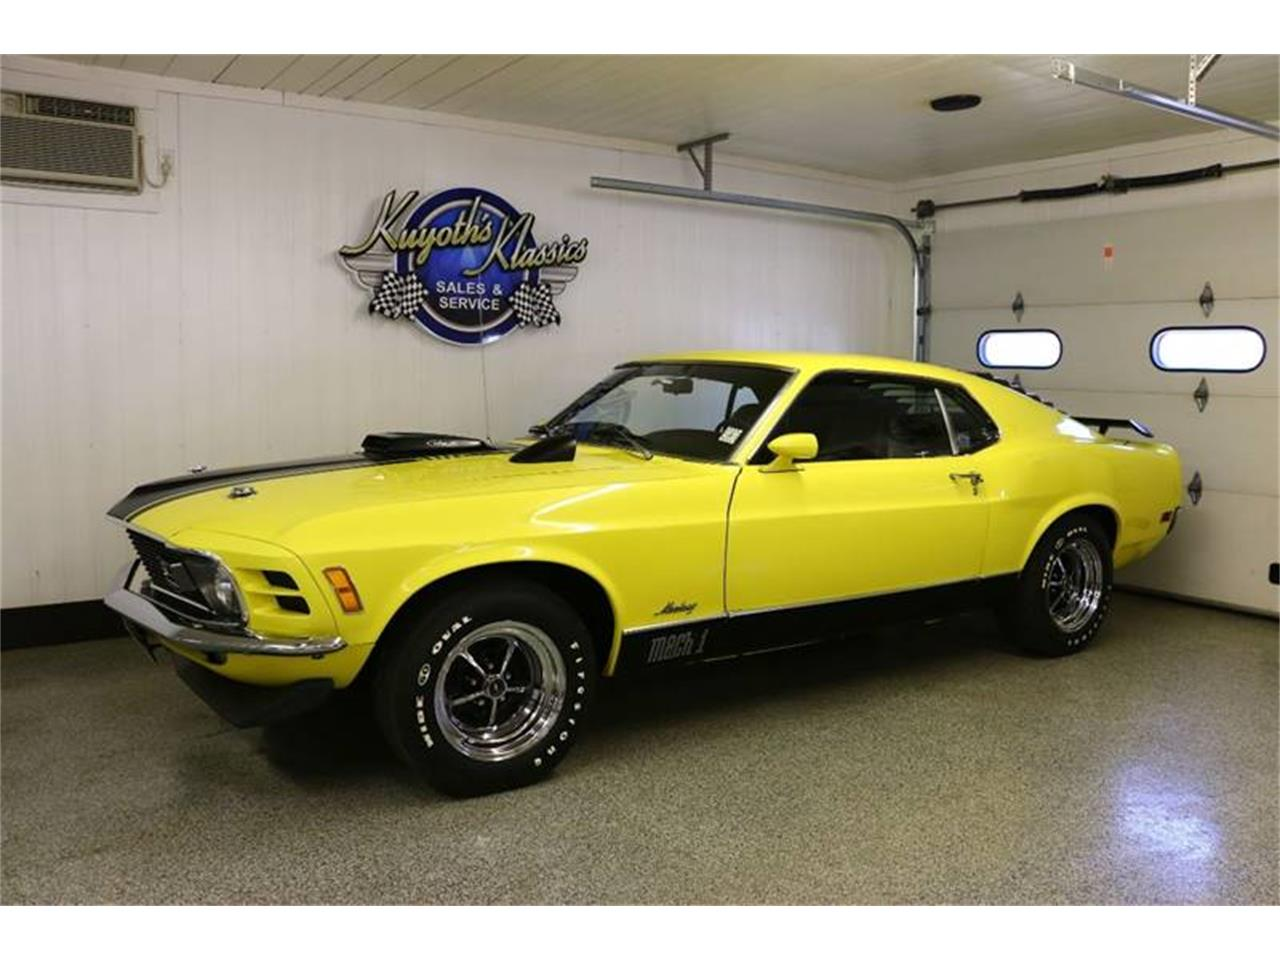 Large Picture of Classic 1970 Ford Mustang - $49,995.00 Offered by Kuyoth's Klassics - NRLD